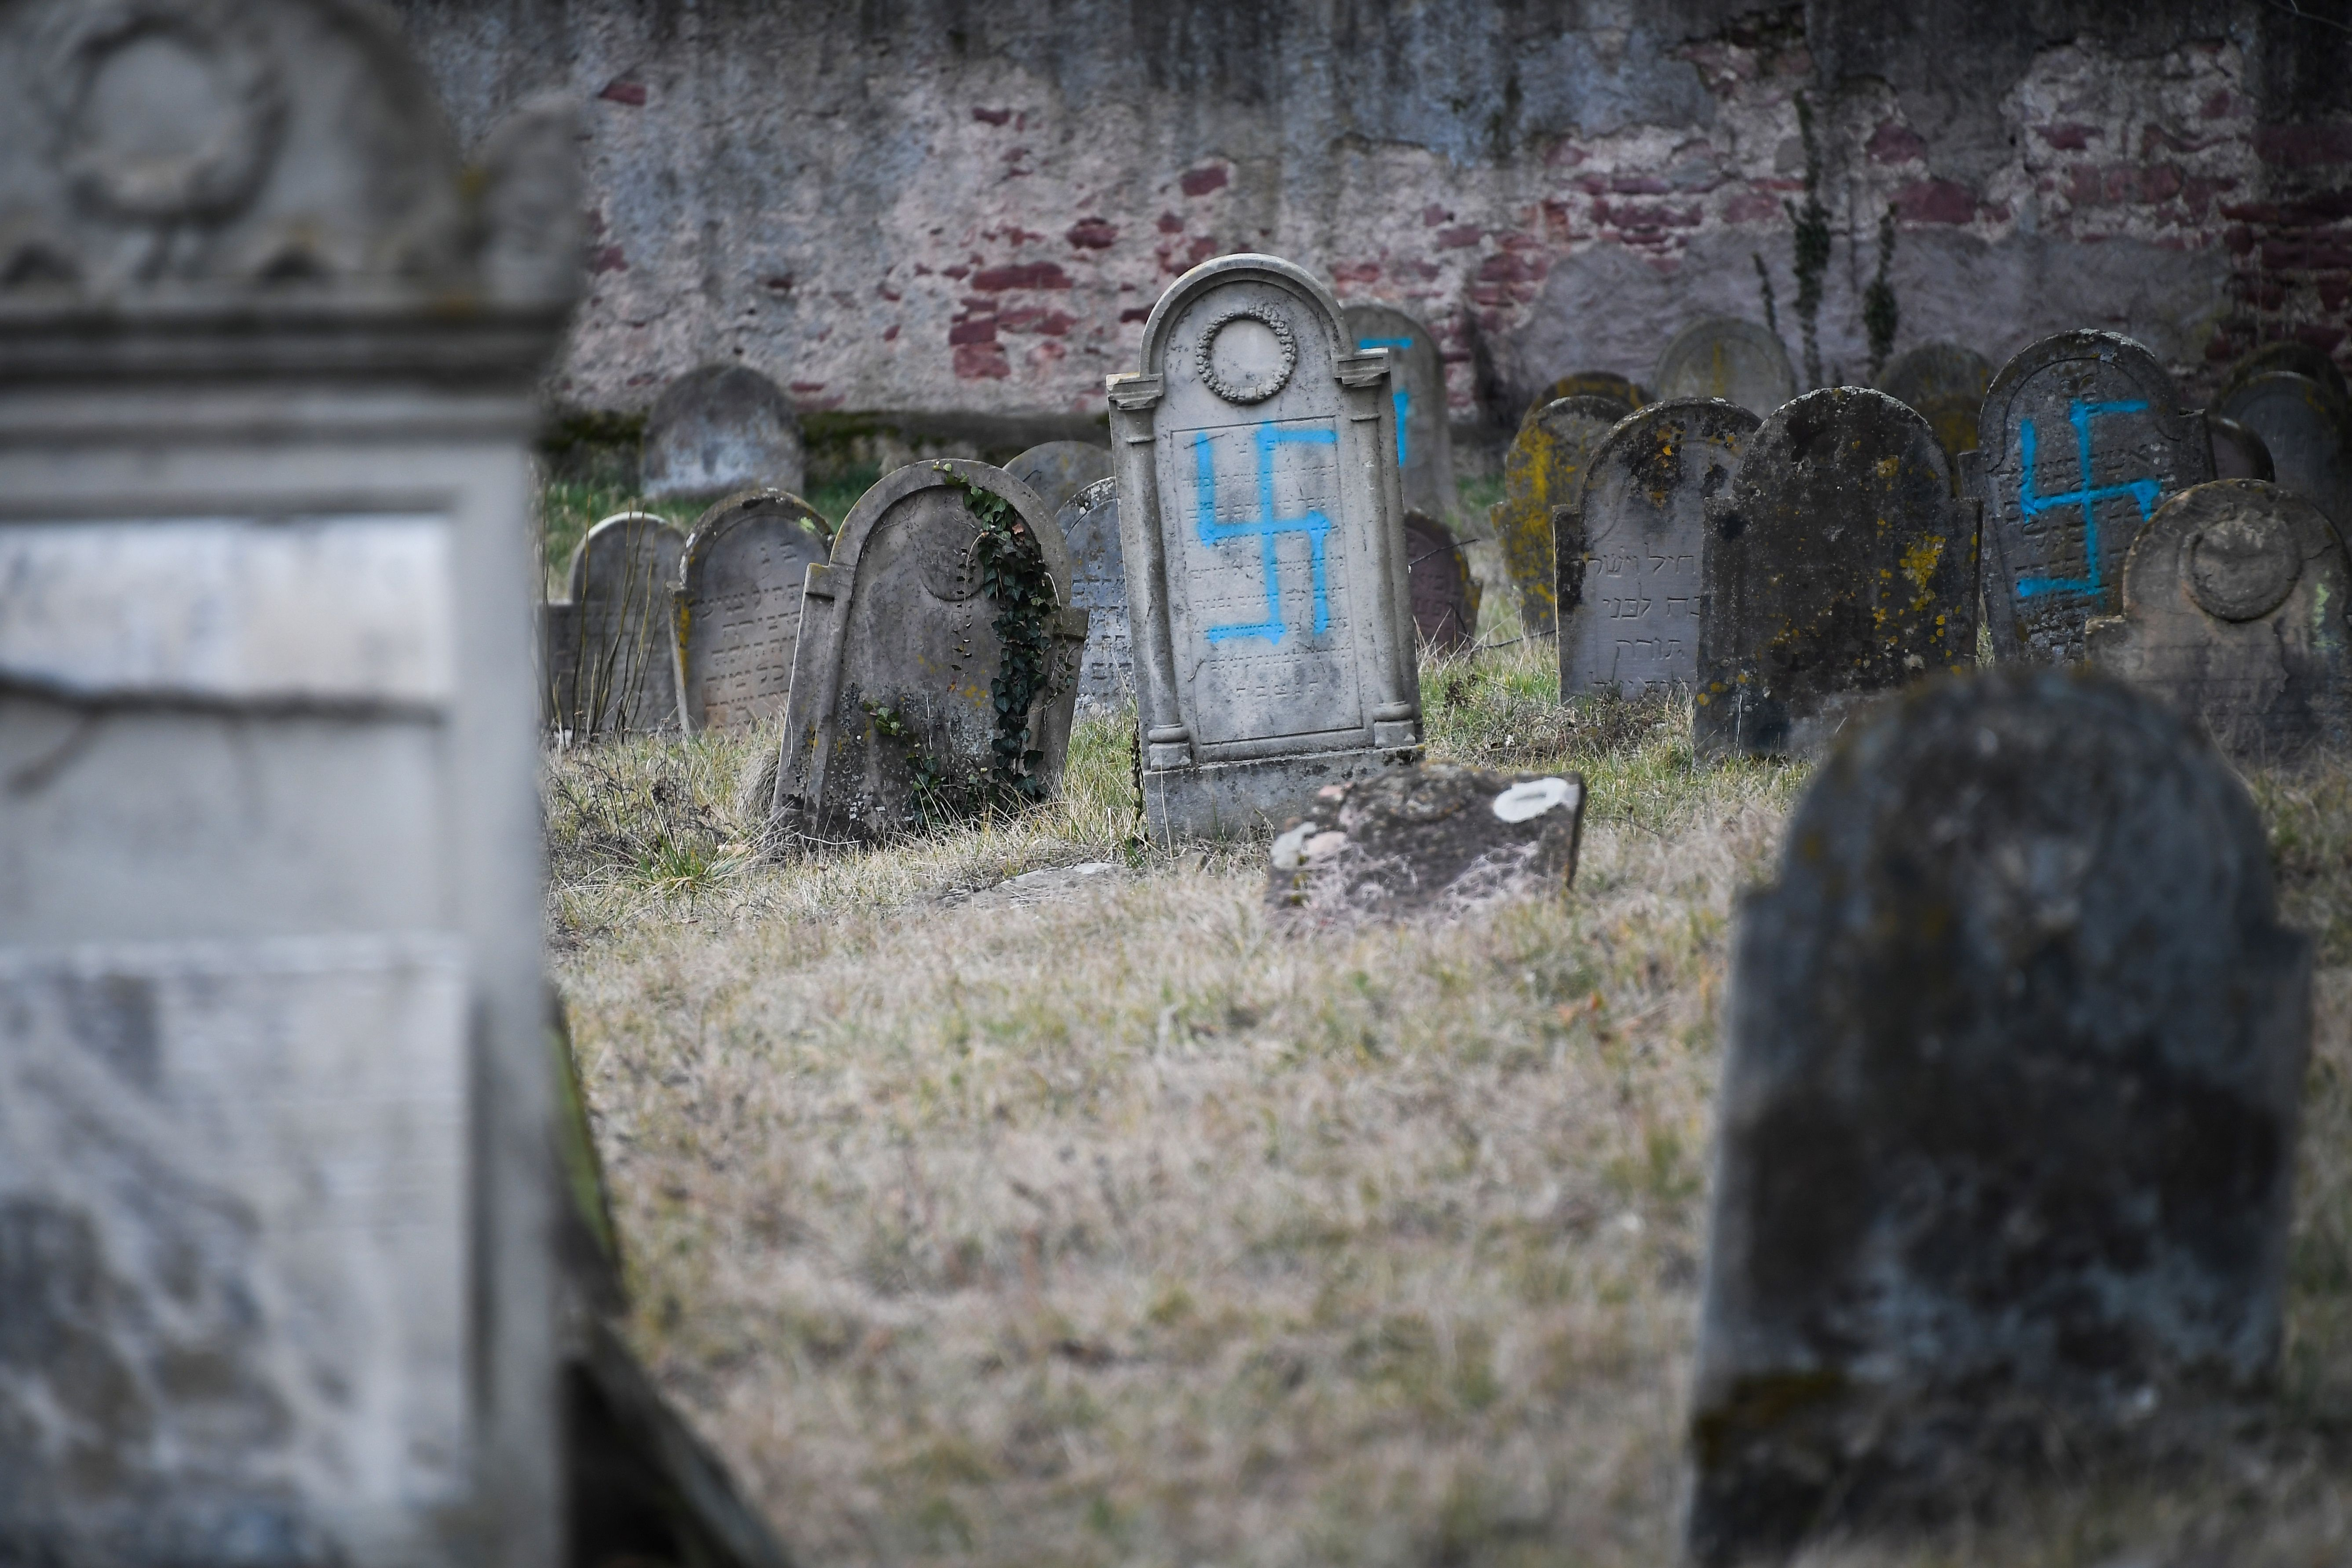 A picture taken on February 19, 2019 shows graves vandalised with swastikas at the Jewish cemetery in Quatzenheim, on the day of a nationwide marches against a rise in anti-Semitic attacks. - Around 80 graves have been vandalised at the Jewish cemetery in the village of Quatzenheim, close to the border with Germany in the Alsace region, which were discovered early February 19, 2019, according to a statement from the regional security office. (Photo by Frederick FLORIN / AFP) (Photo credit should read FREDERICK FLORIN/AFP/Getty Images)